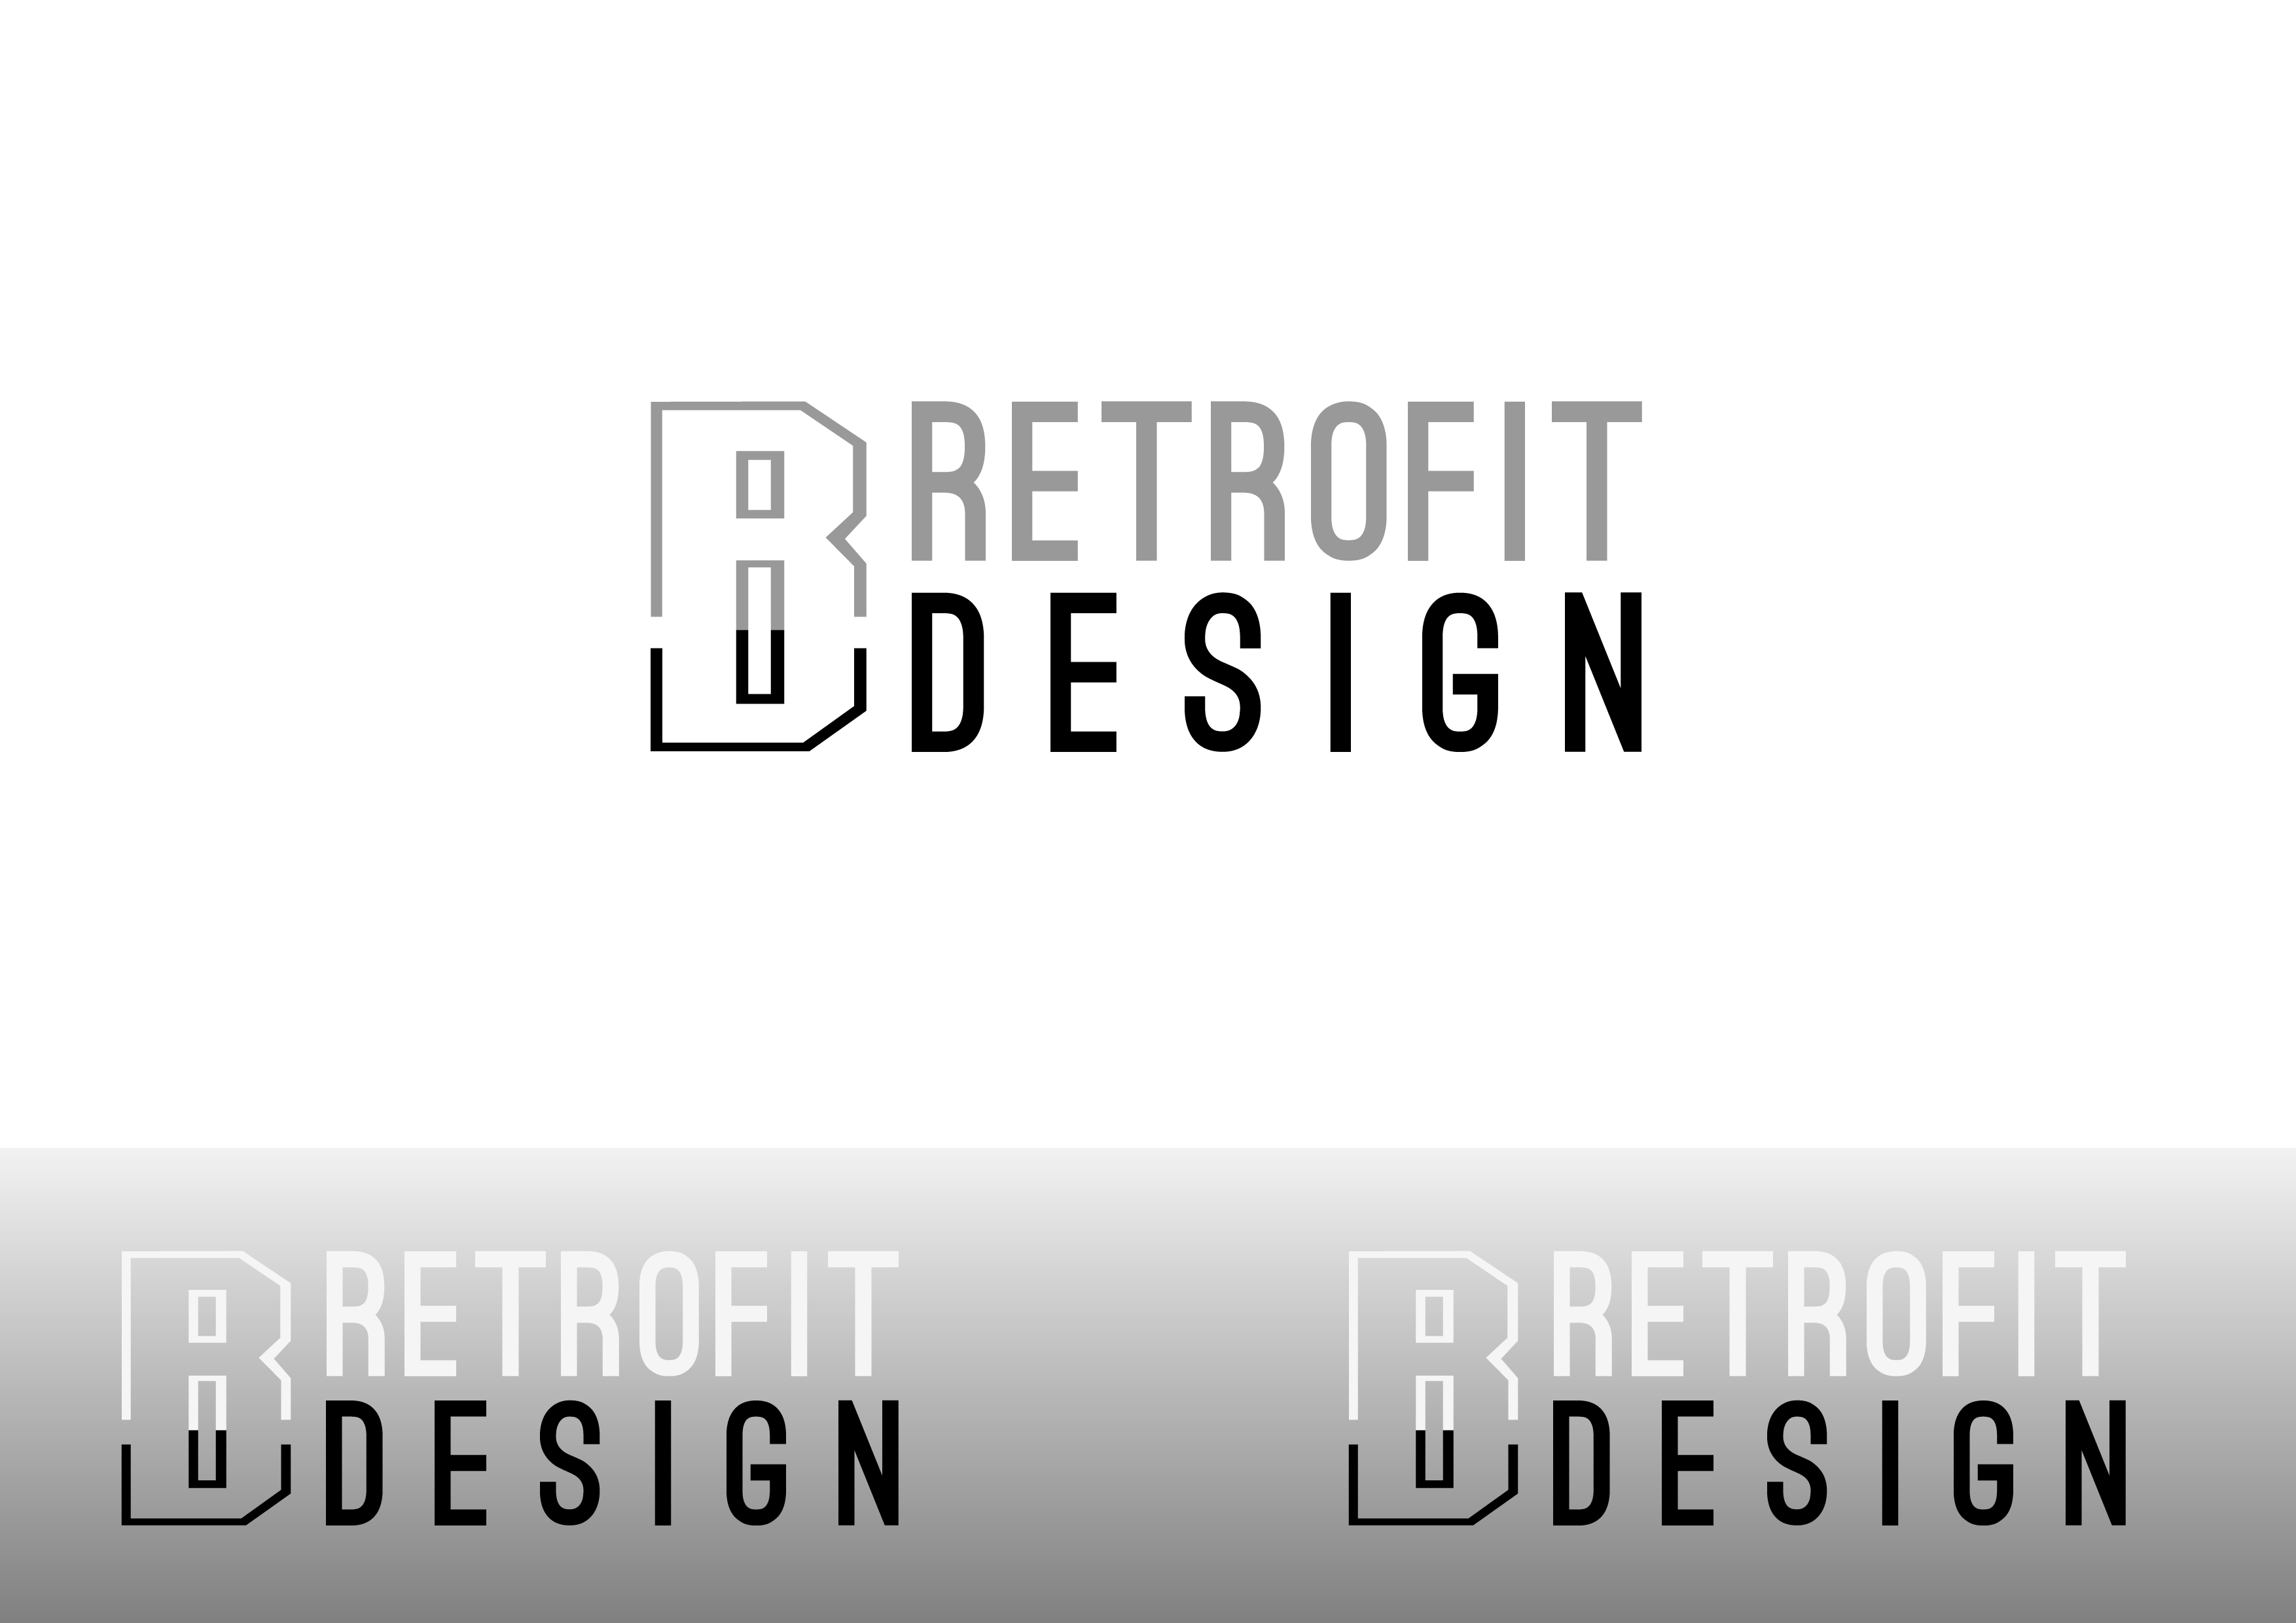 Logo Design by 3draw - Entry No. 179 in the Logo Design Contest Inspiring Logo Design for retrofit design.